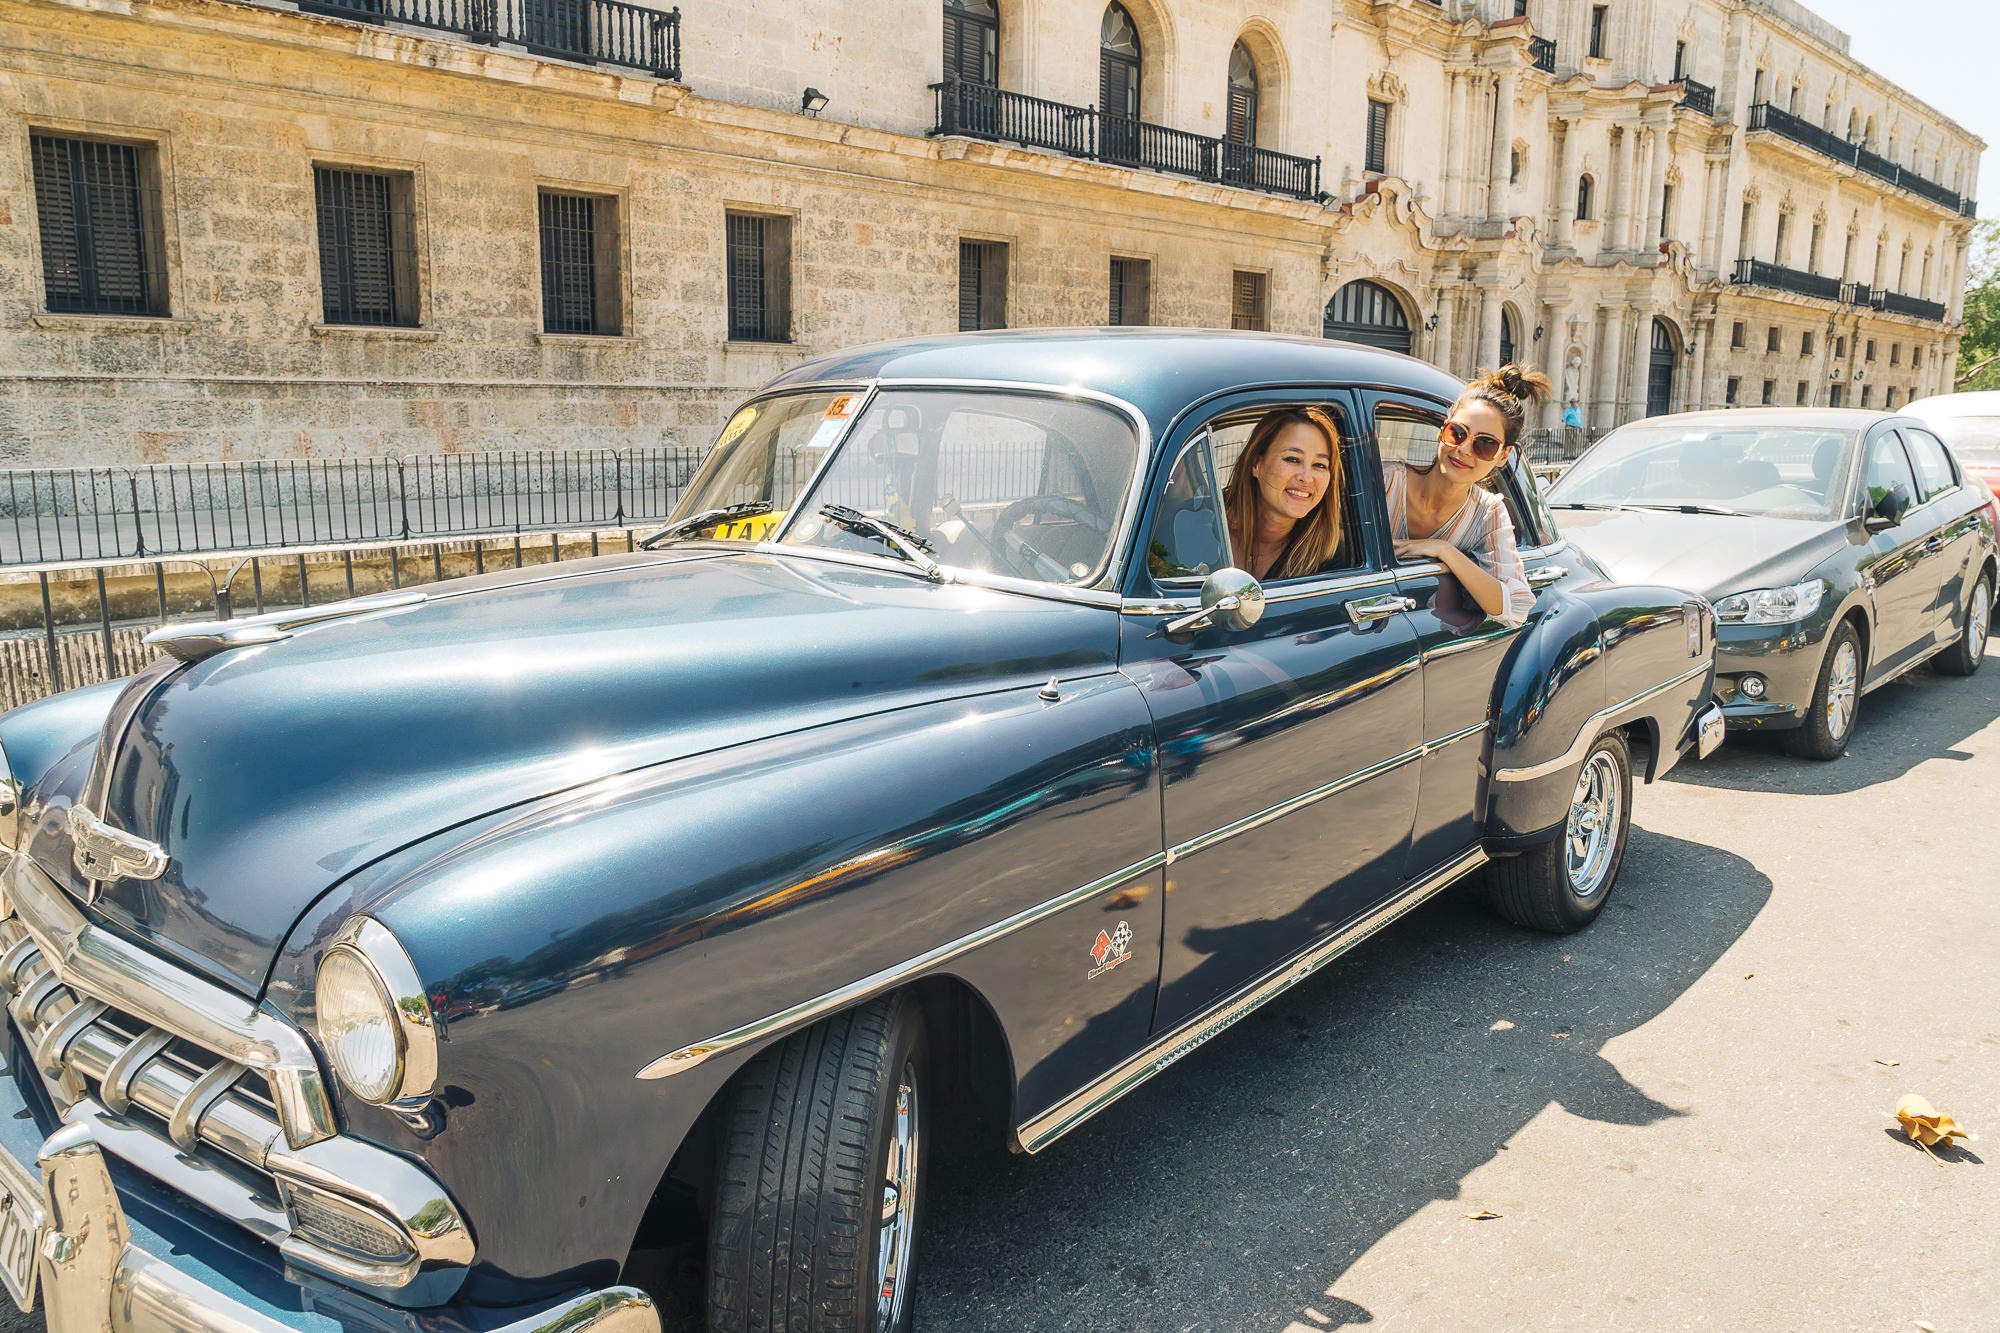 The taxi we took around on our private tour of Havana with Fertours